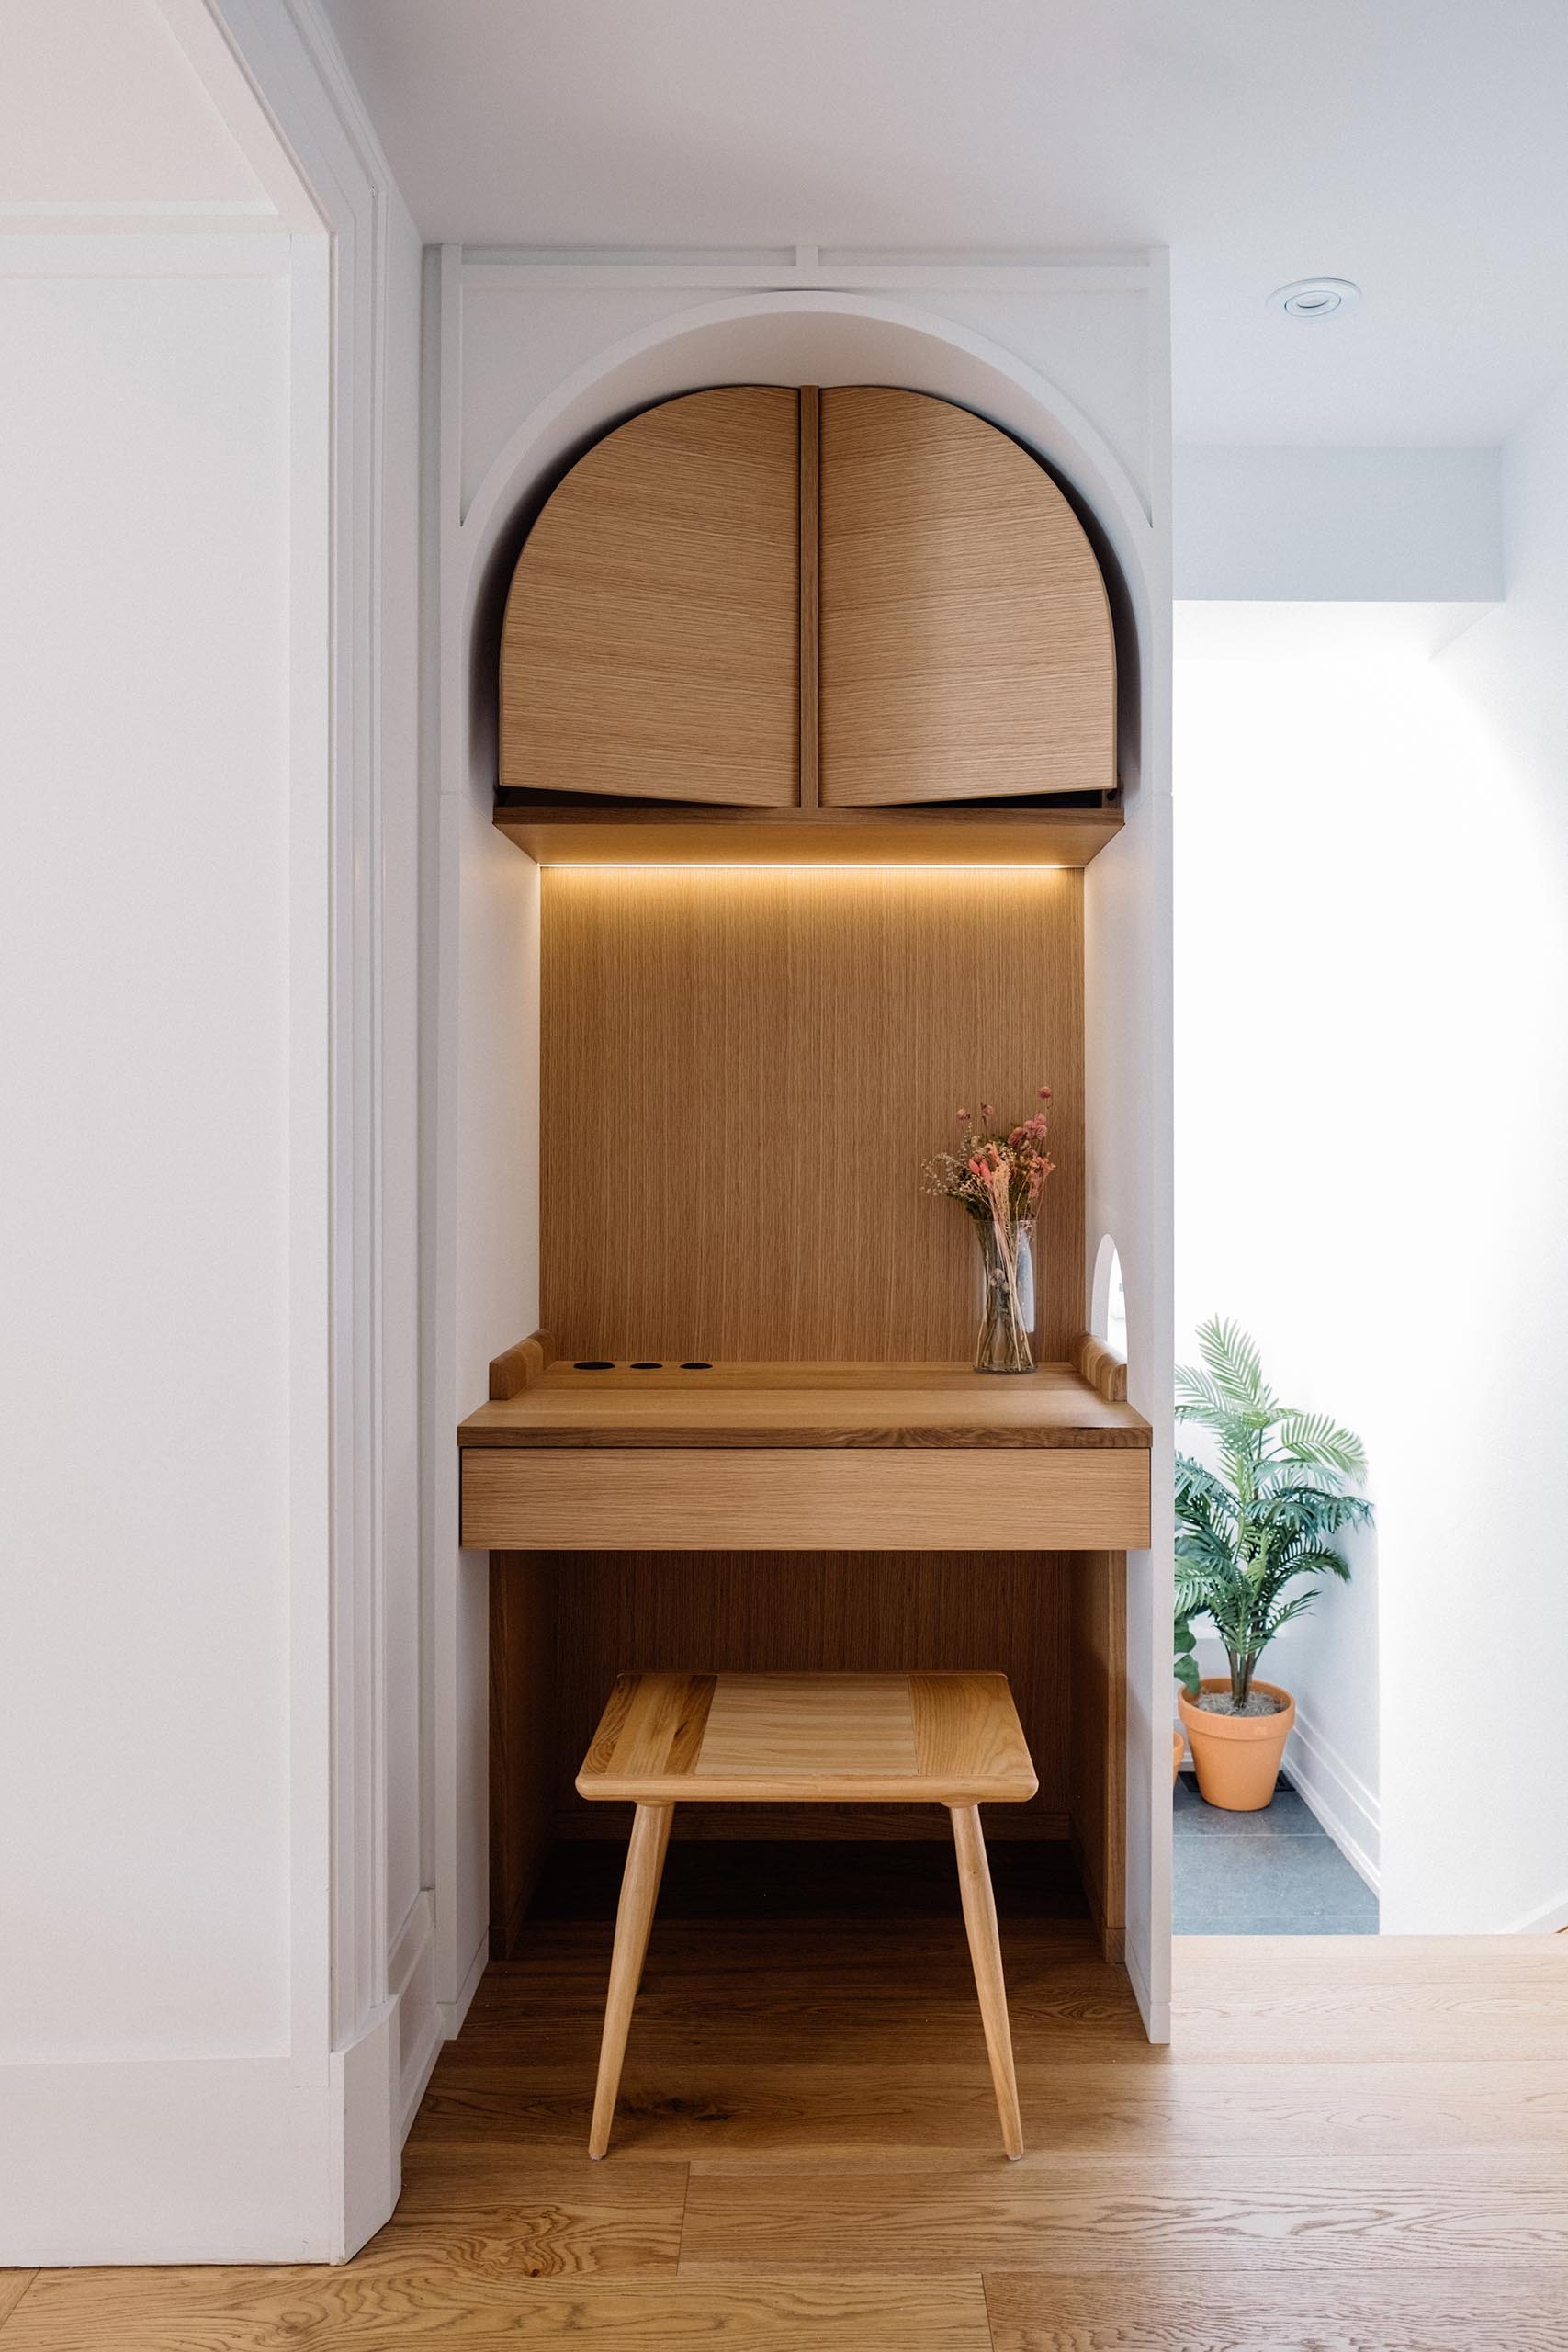 A small home office makes use of an awkward nook, and now includes storage and a desk.